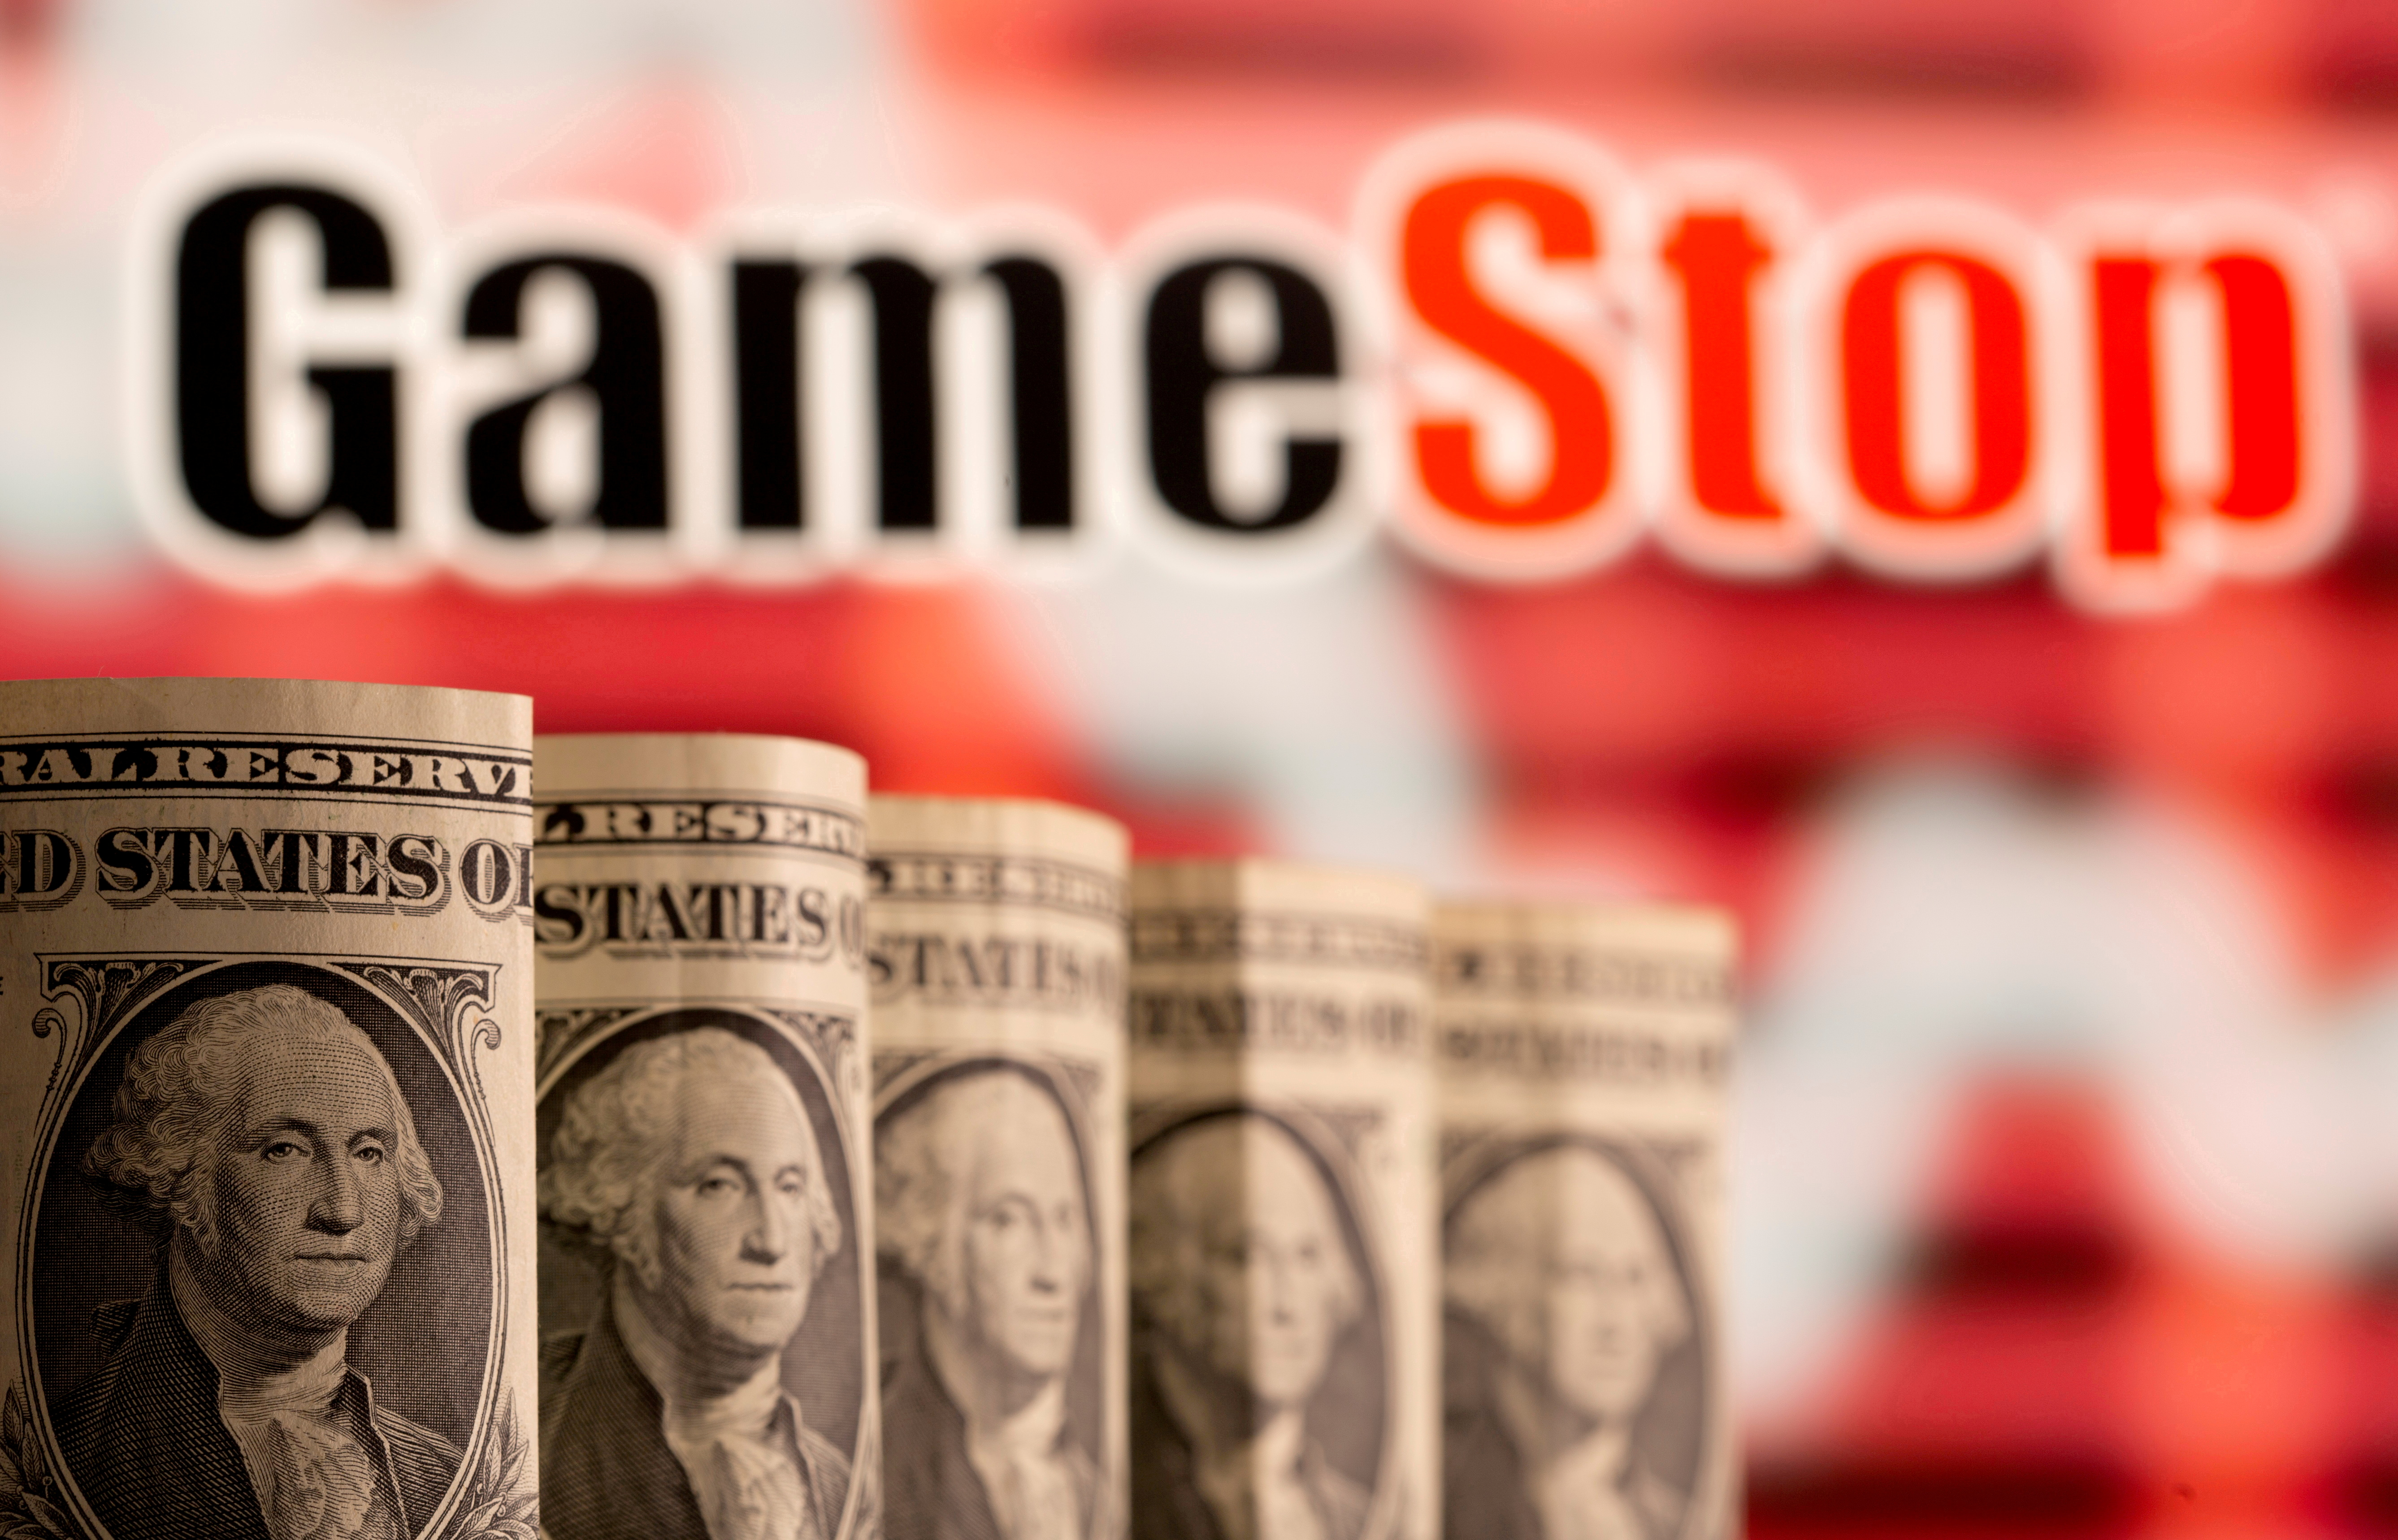 U.S. one dollar banknotes are seen in front of displayed GameStop logo in this illustration taken February 8, 2021. REUTERS/Dado Ruvic/Illustration